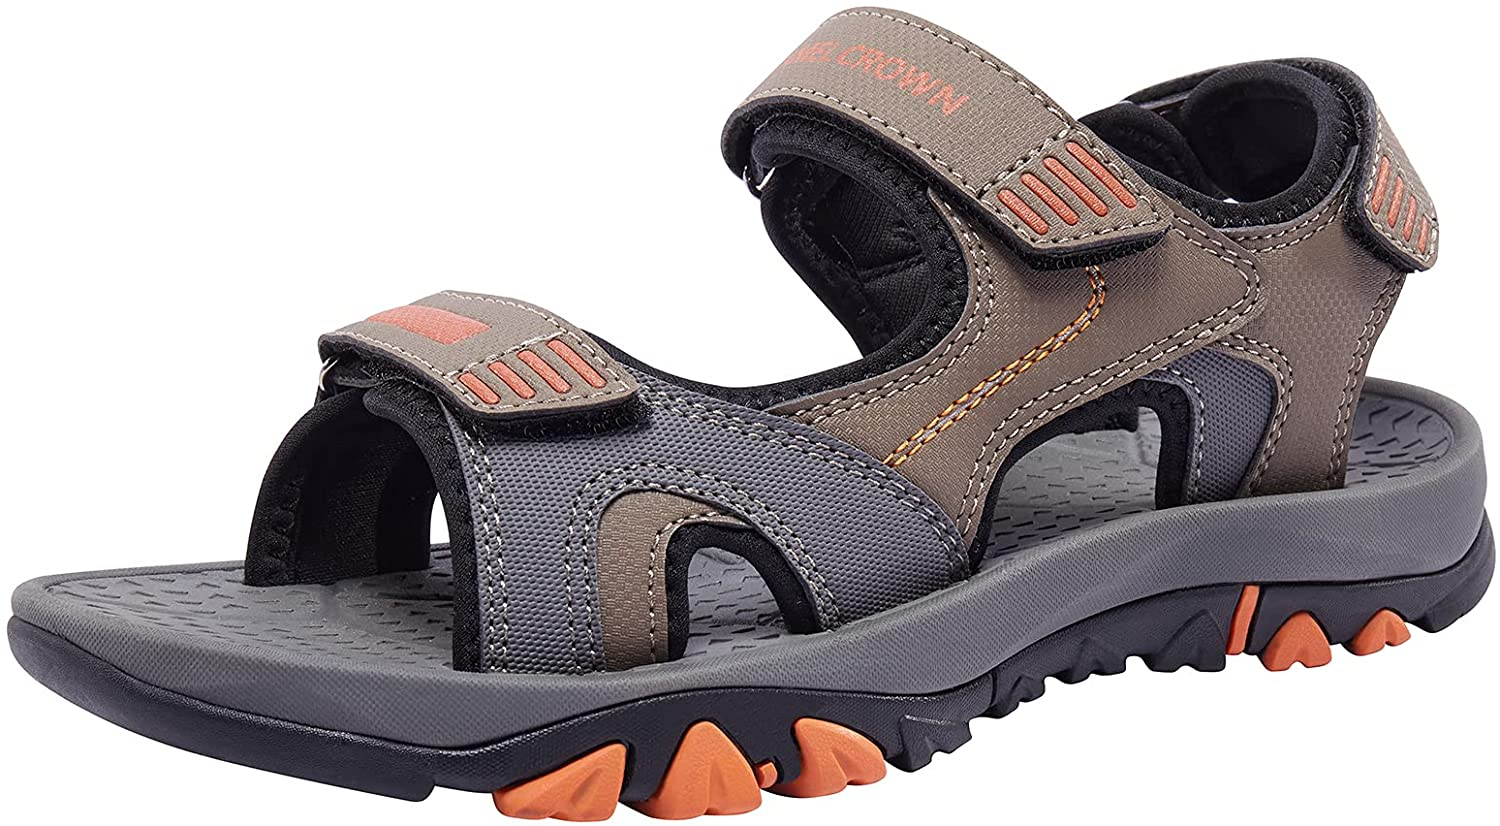 CAMEL CROWN Comfortable Fashion Hiking Sandals Waterproof for Popular products Men Sport